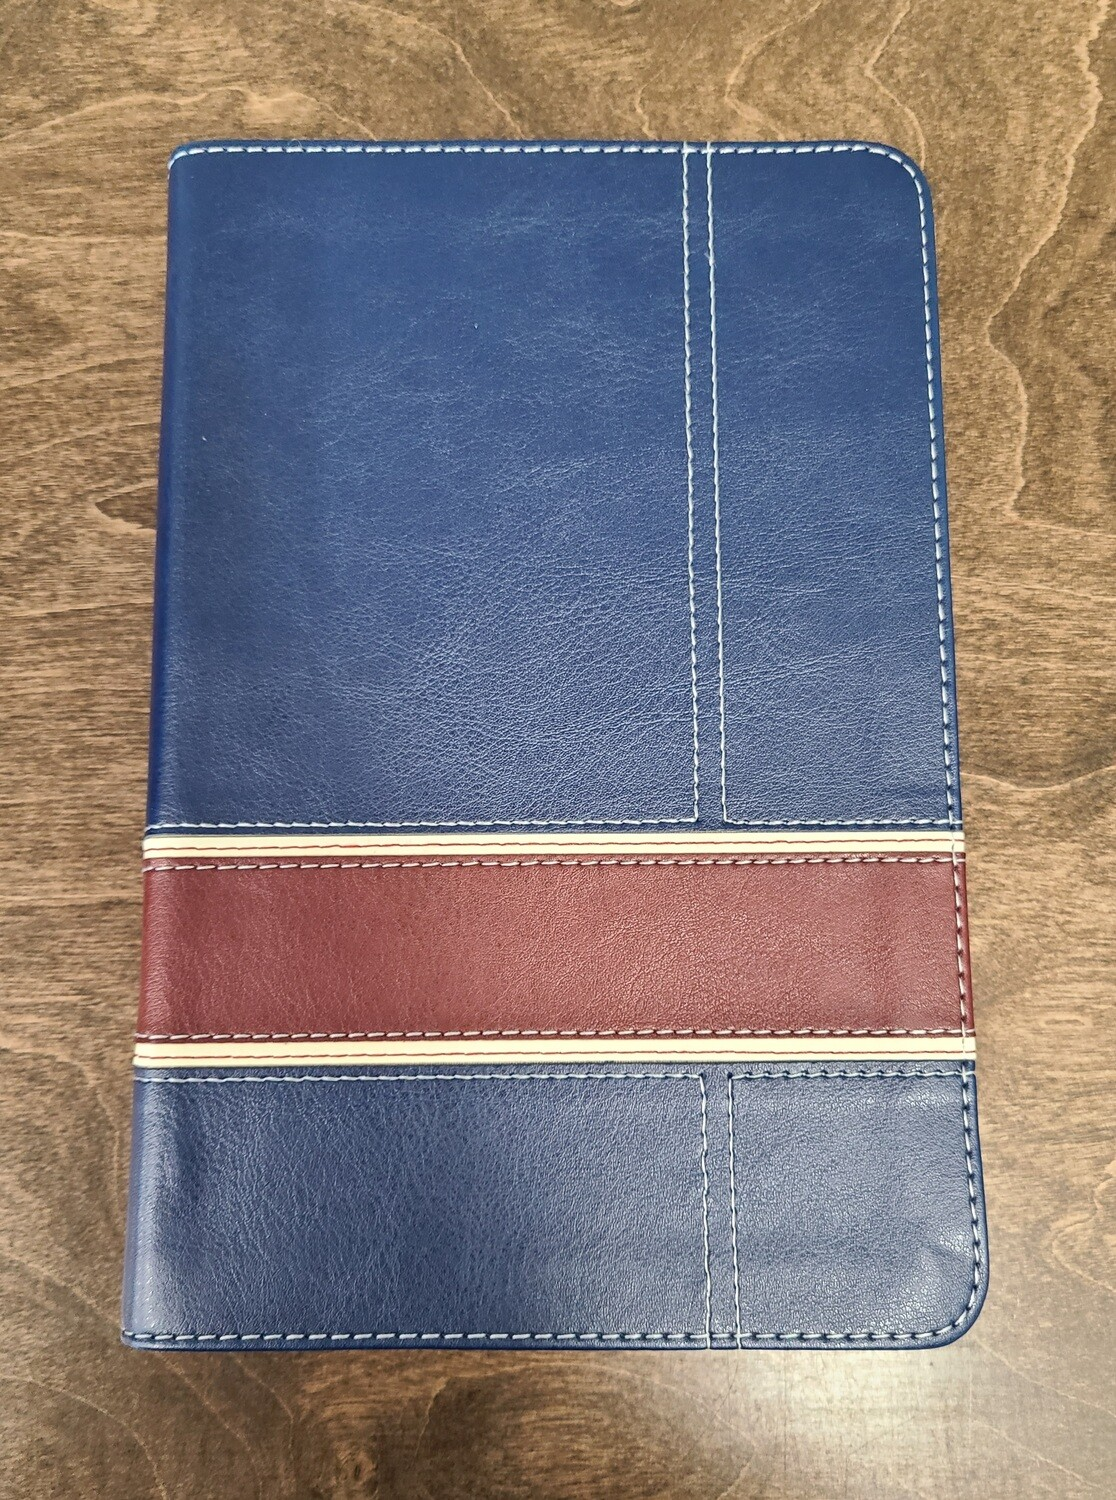 HCSB The Military Families Bible - Navy/Crimson LeatherTouch